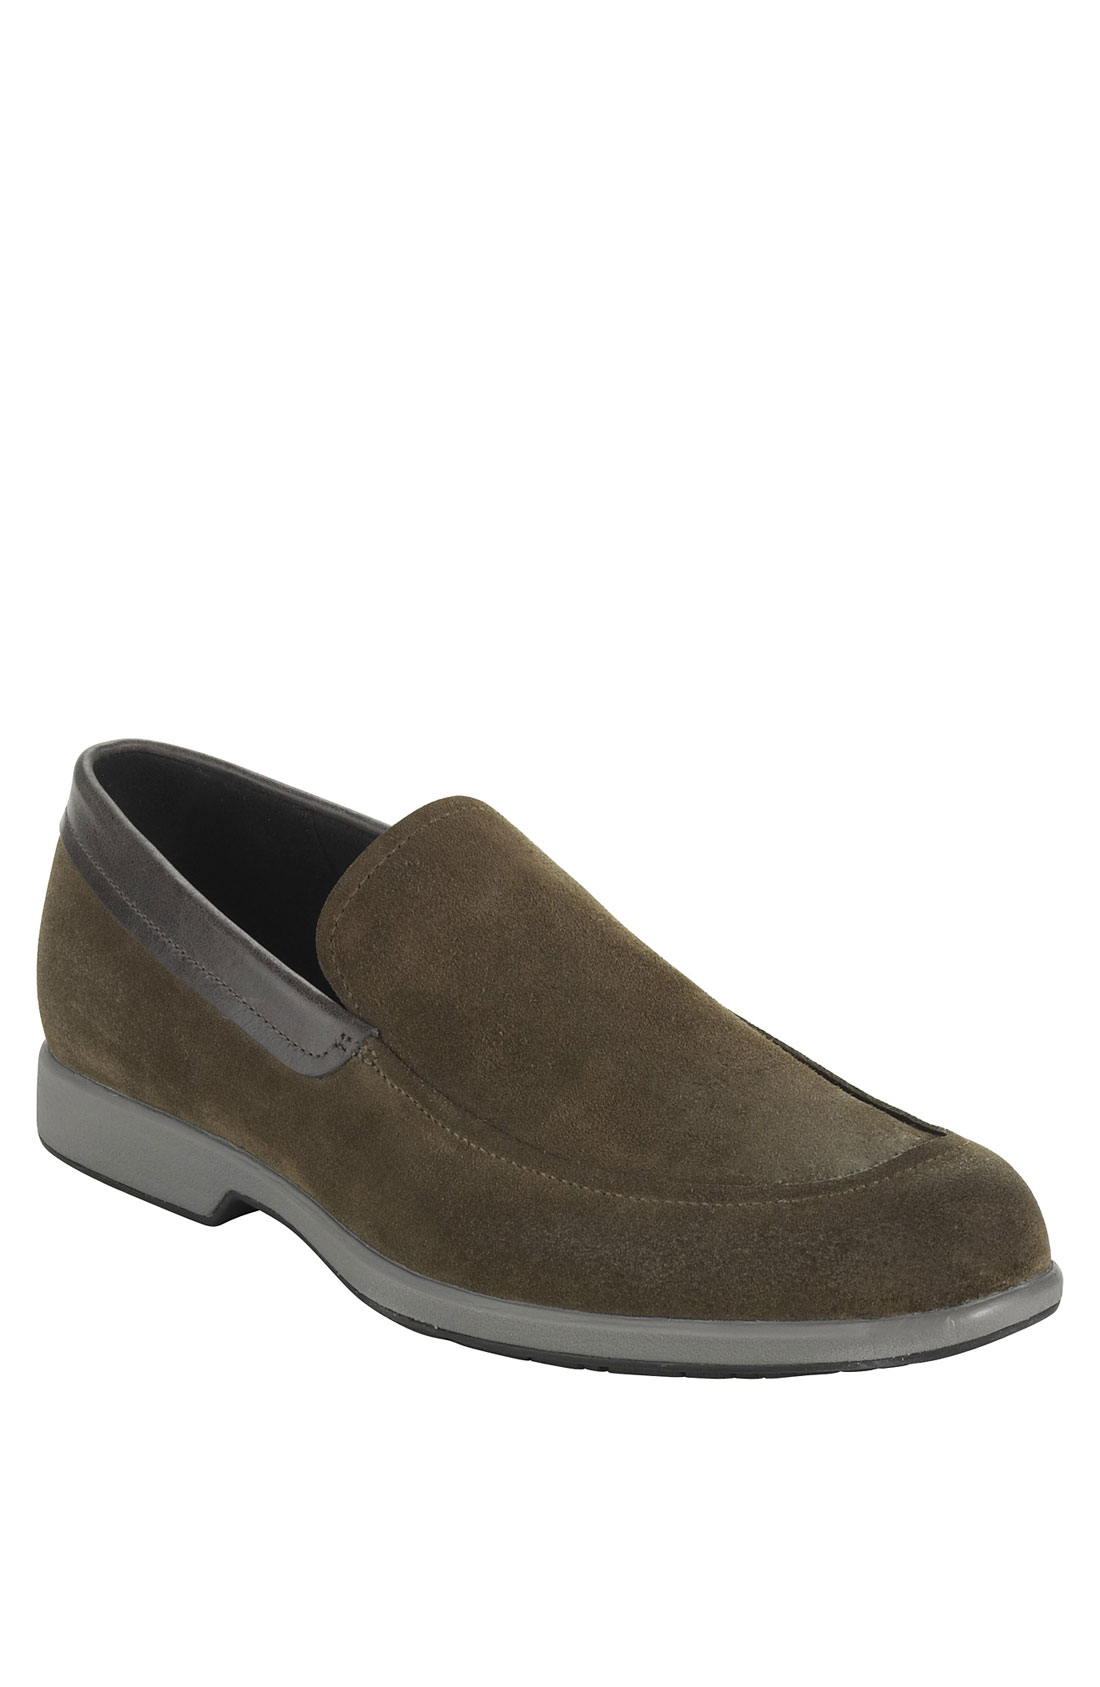 Mens Gray Suede Shoes